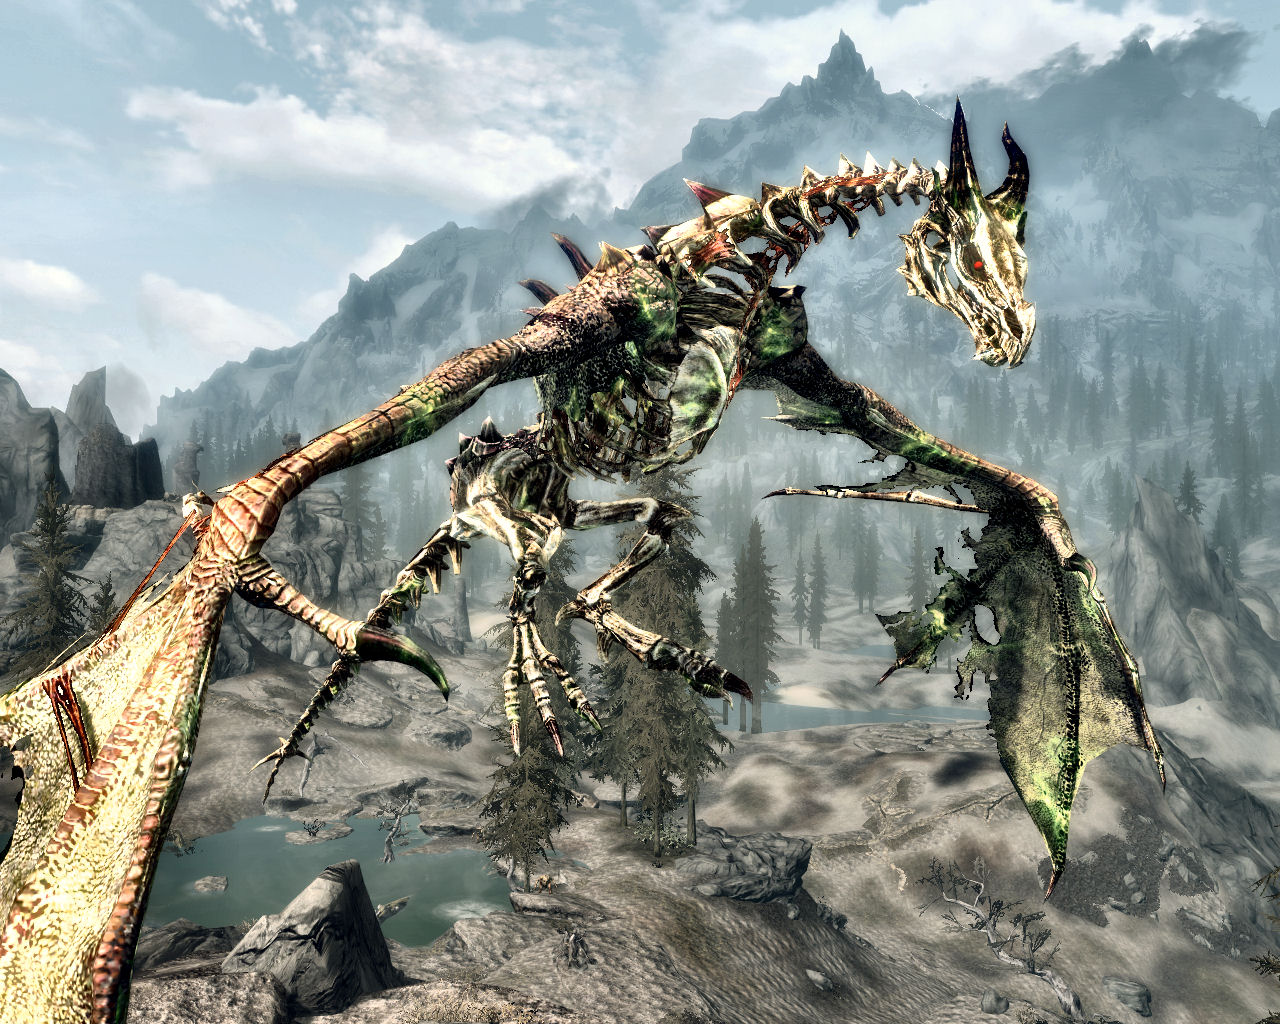 Images of New Dragon Skyrim - www industrious info